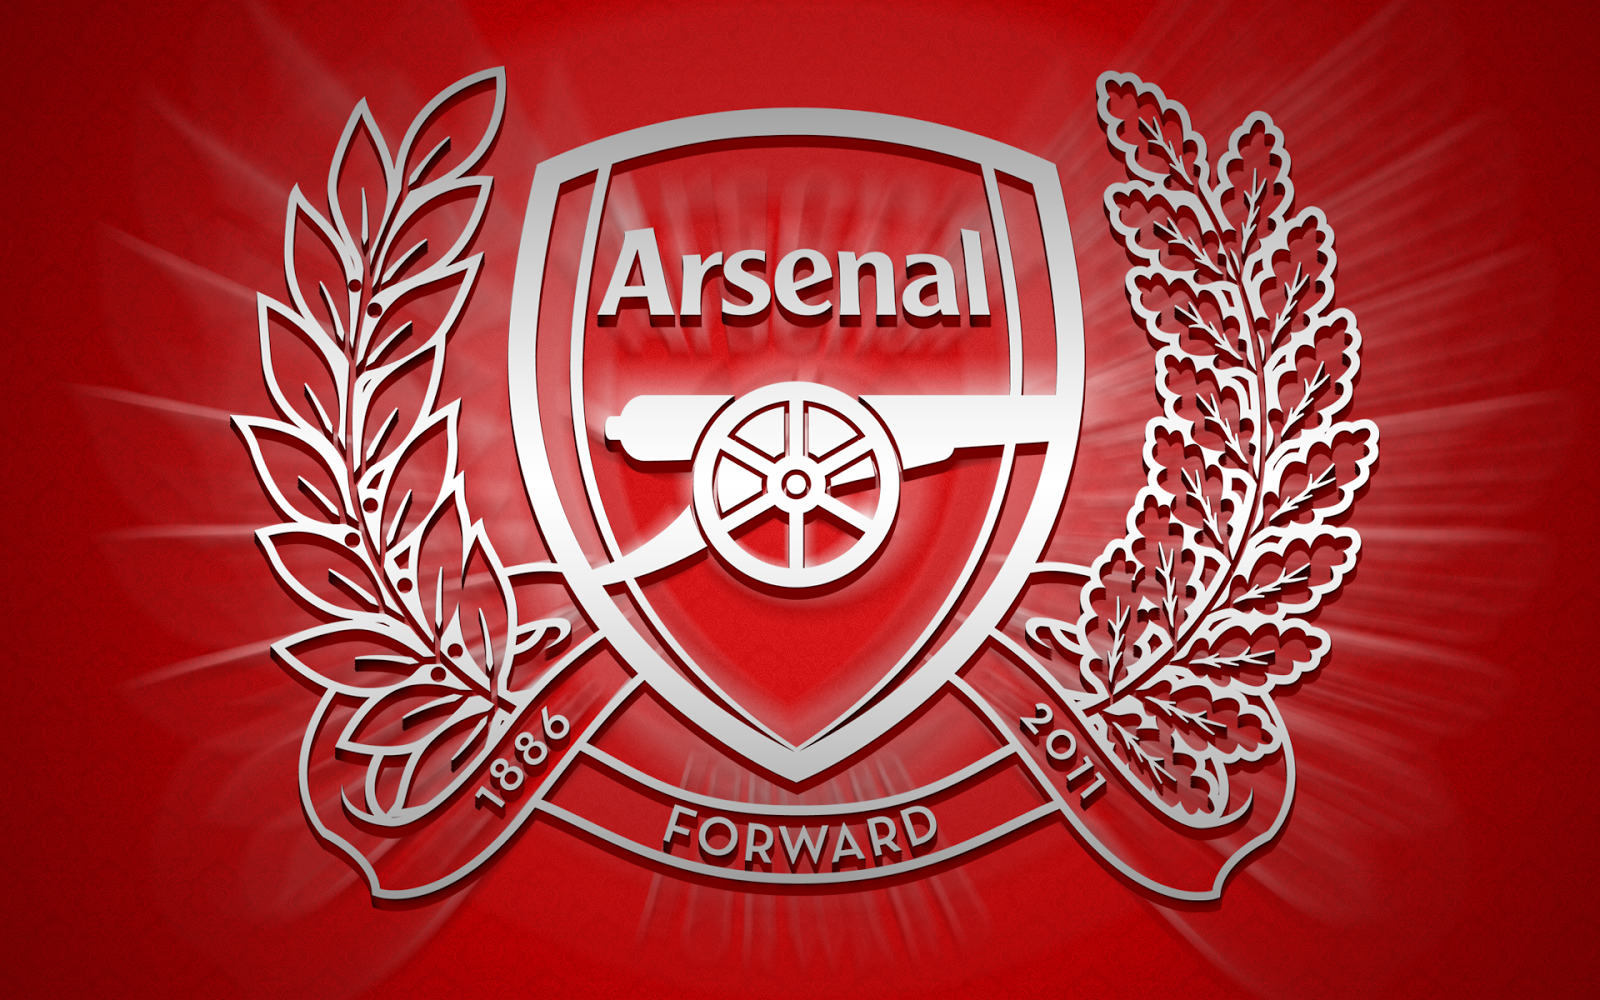 Arsenal logo hd